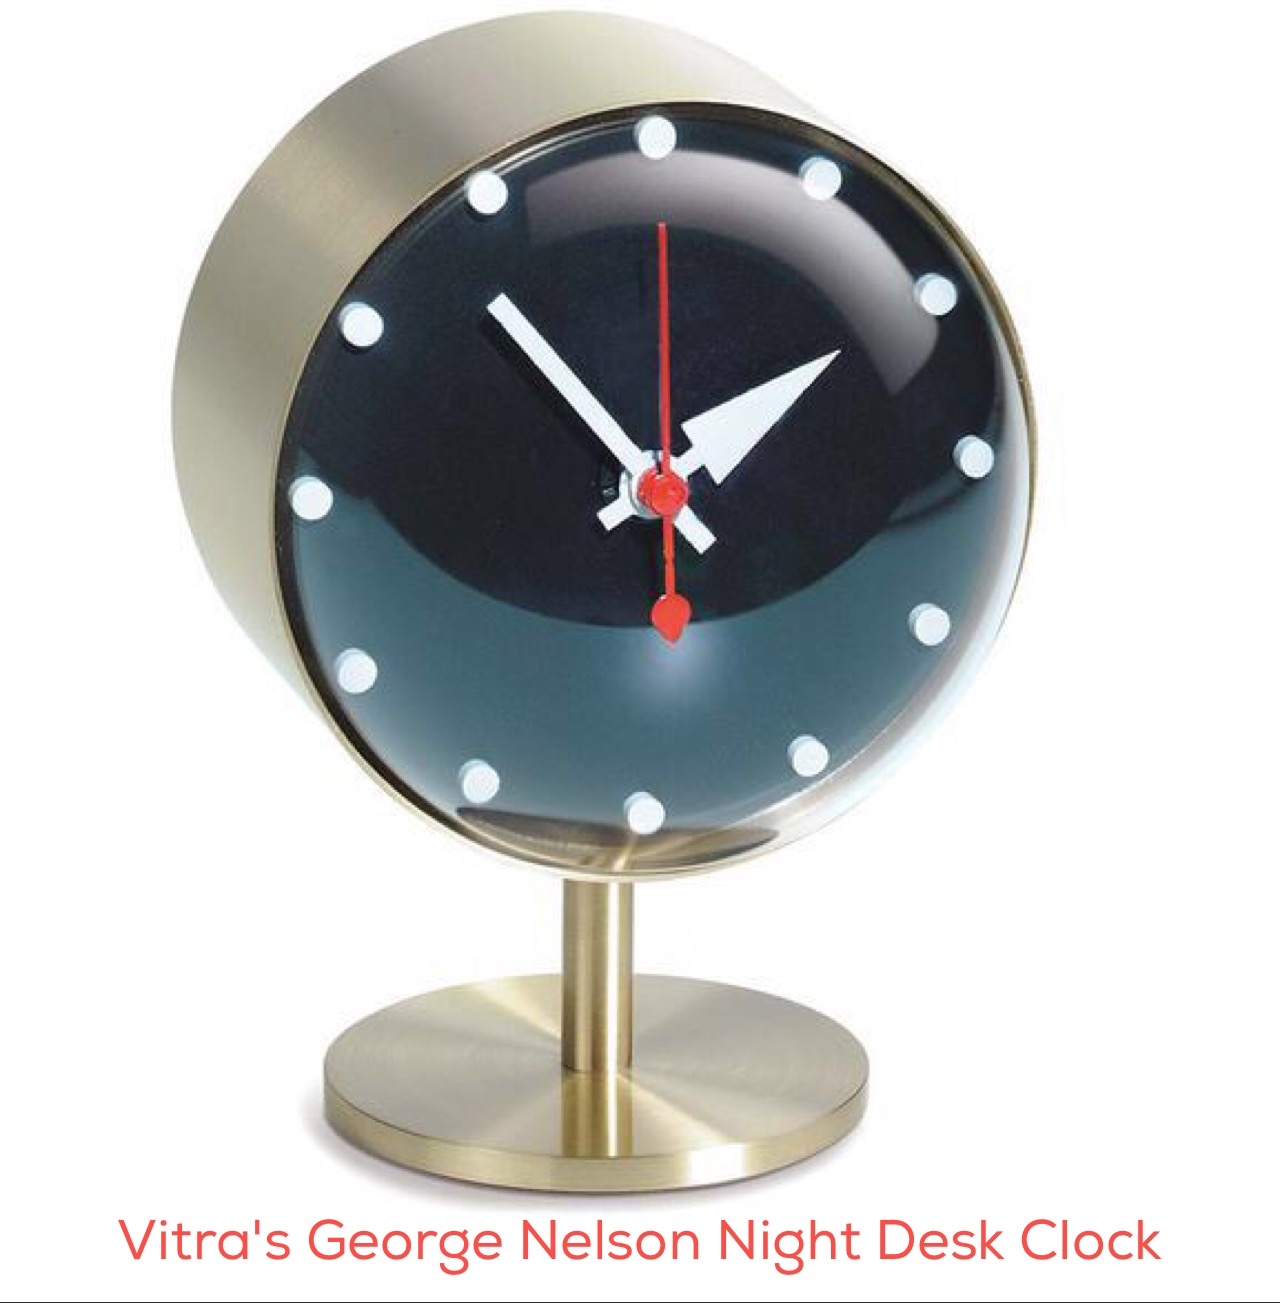 Vitra George Nelson Night Desk Clock